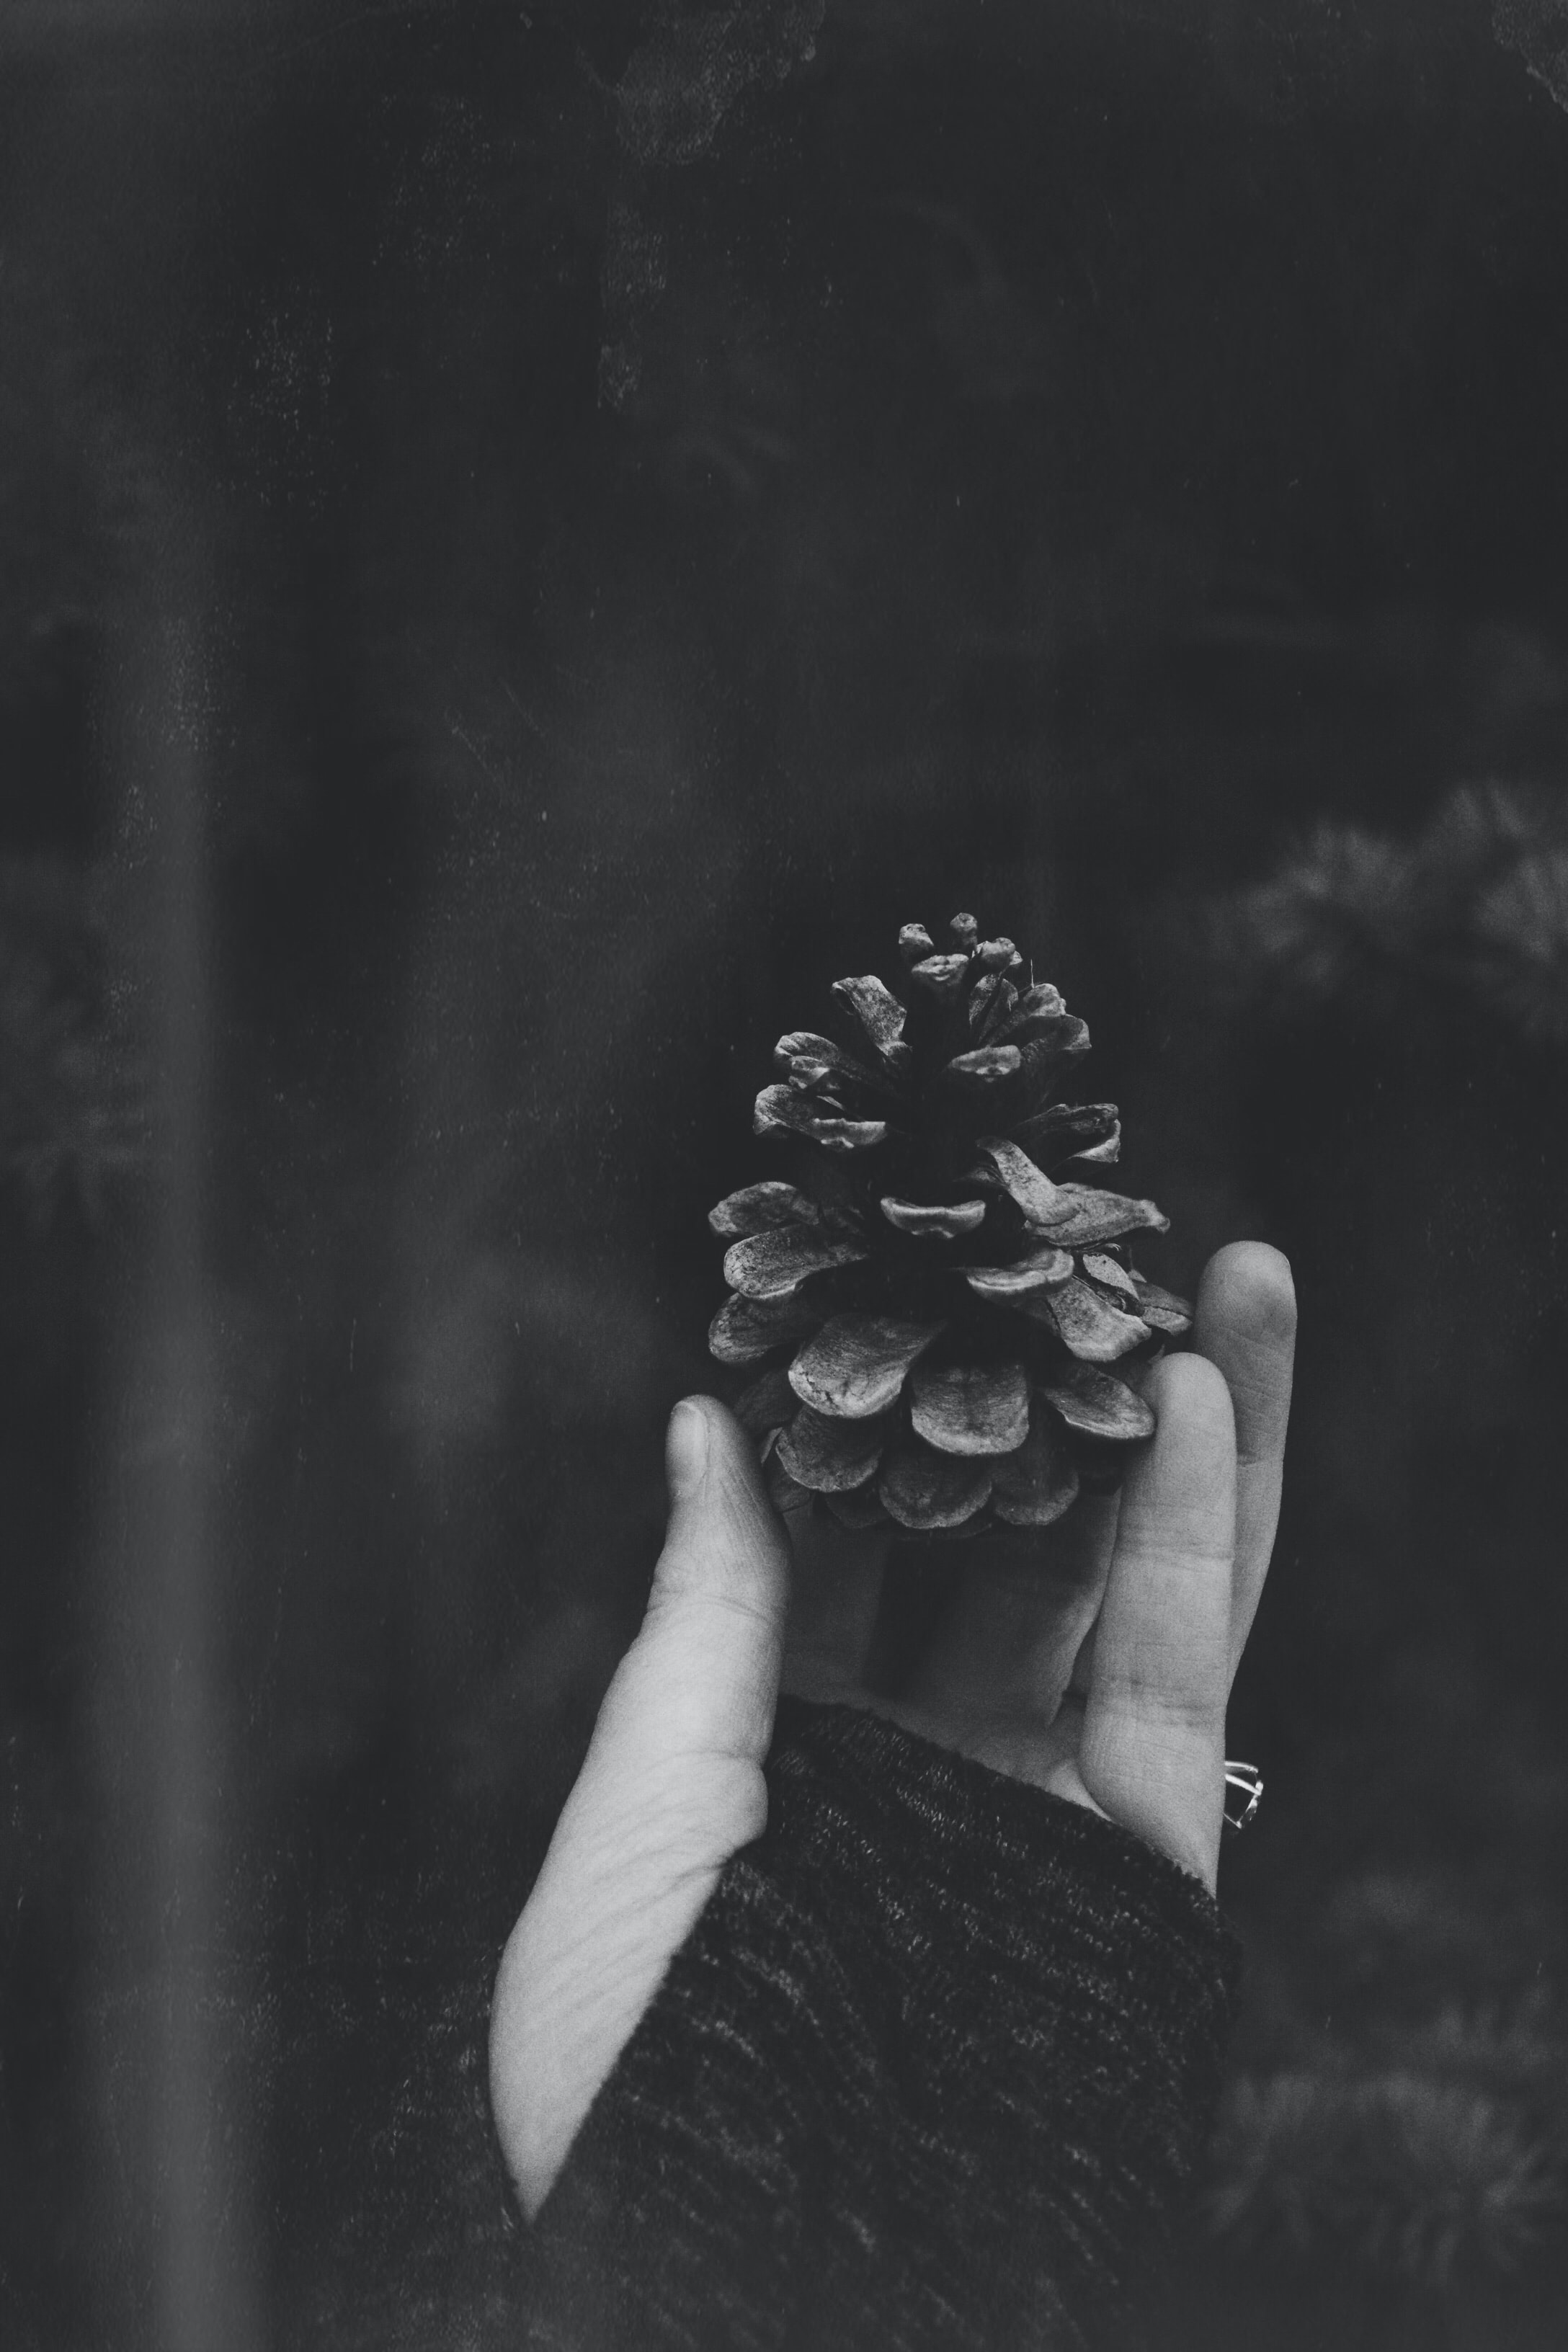 grayscale photo of acorn on person's hand